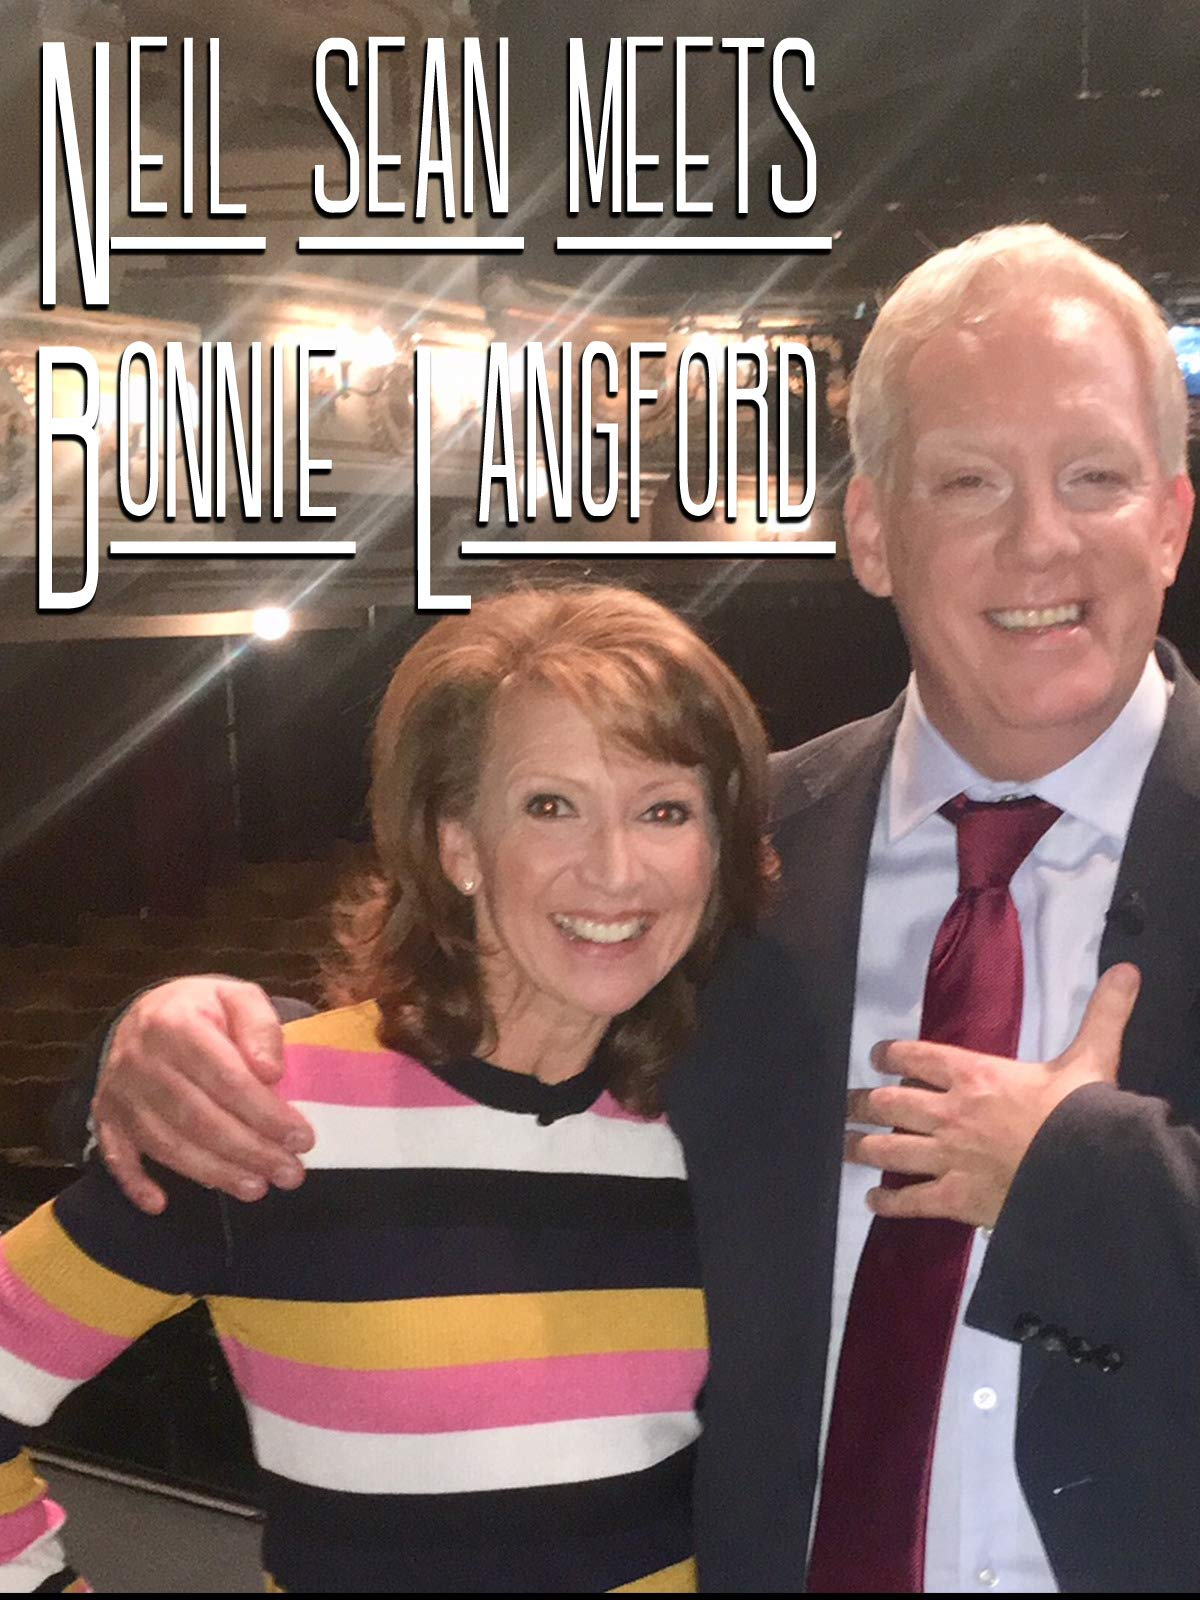 Neil Sean meets Bonnie Langford on Amazon Prime Video UK